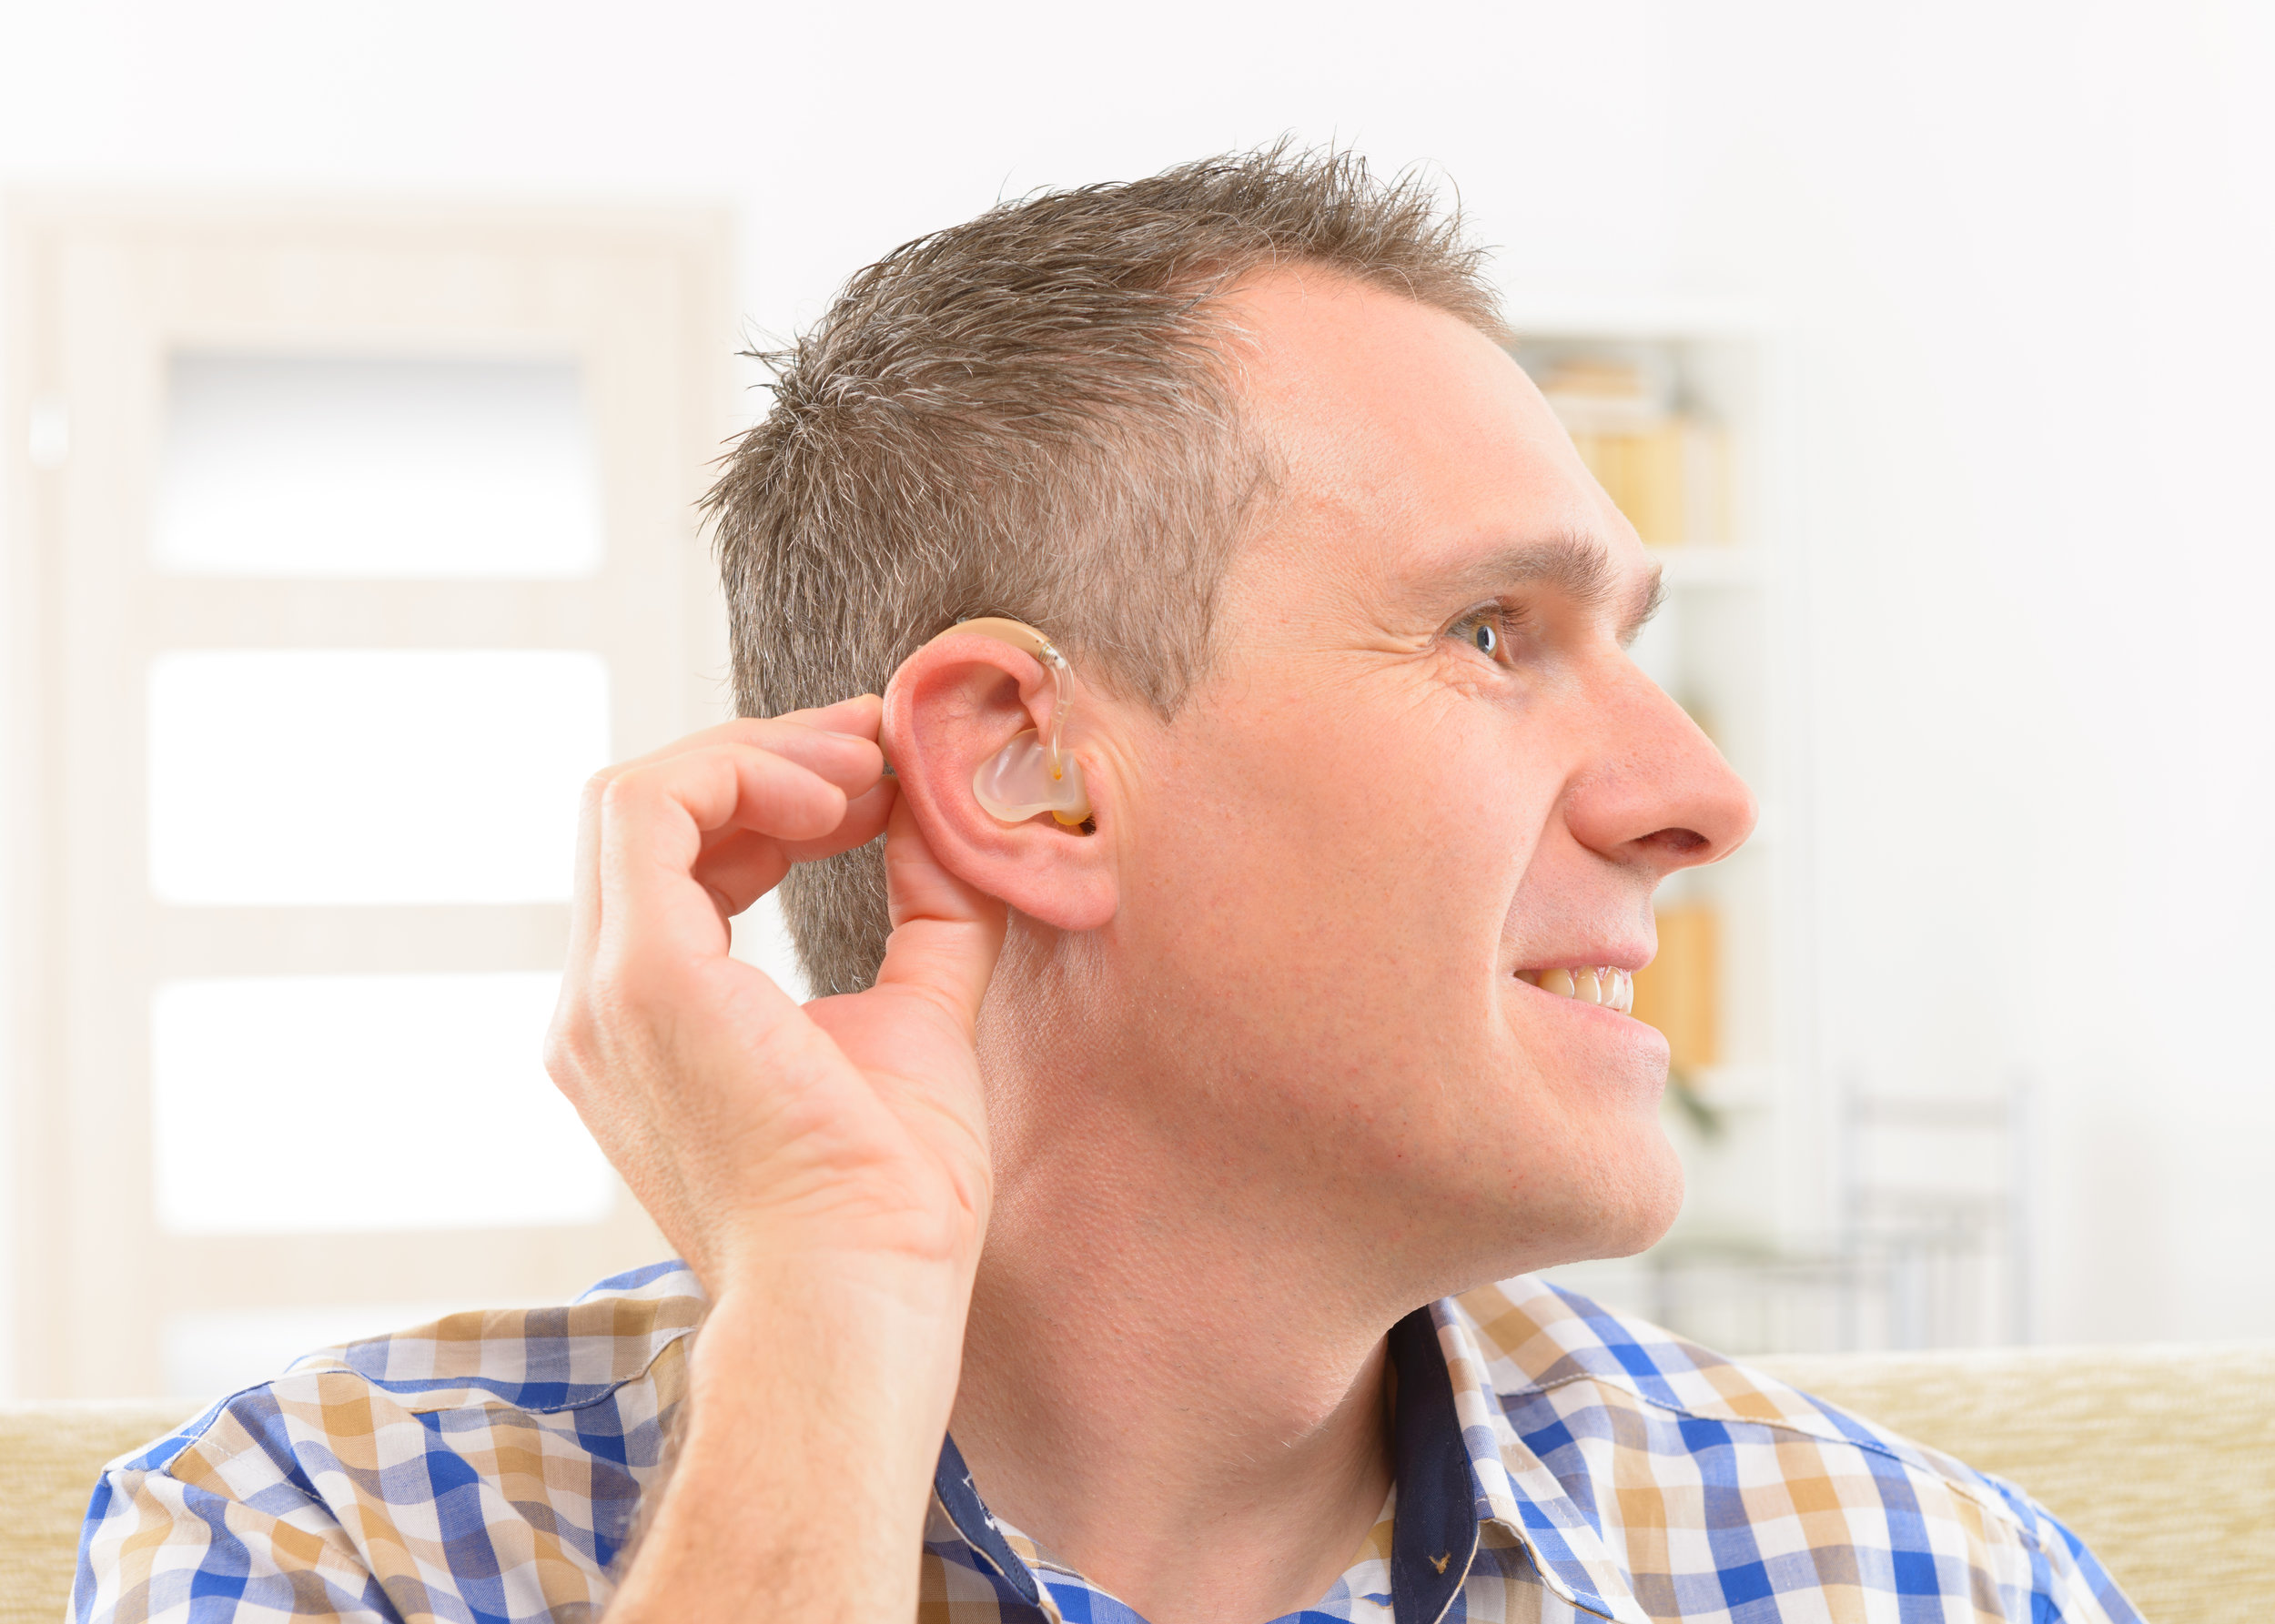 Got new hearing aids? - Make sure to ease into using your new hearing aids until you are comfortable wearing them all the time.